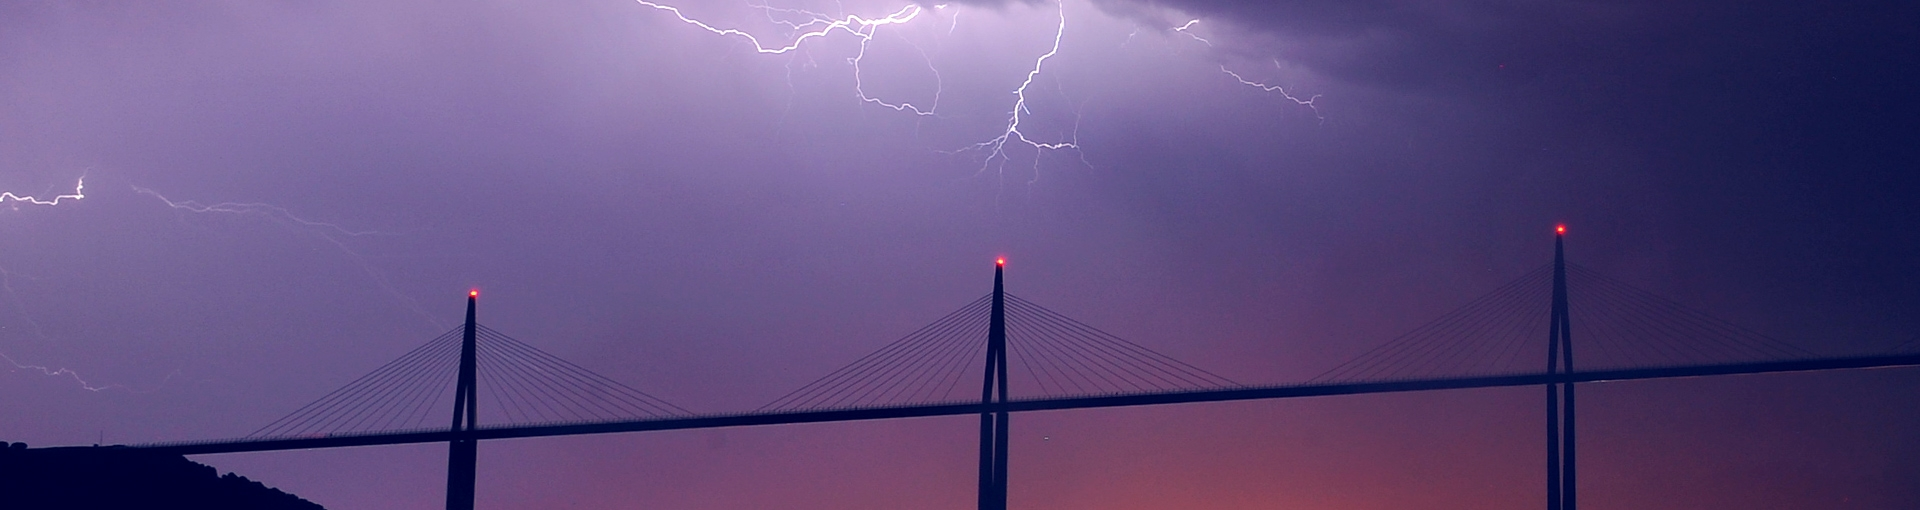 Thunderstorm and lightning on the Viaduct